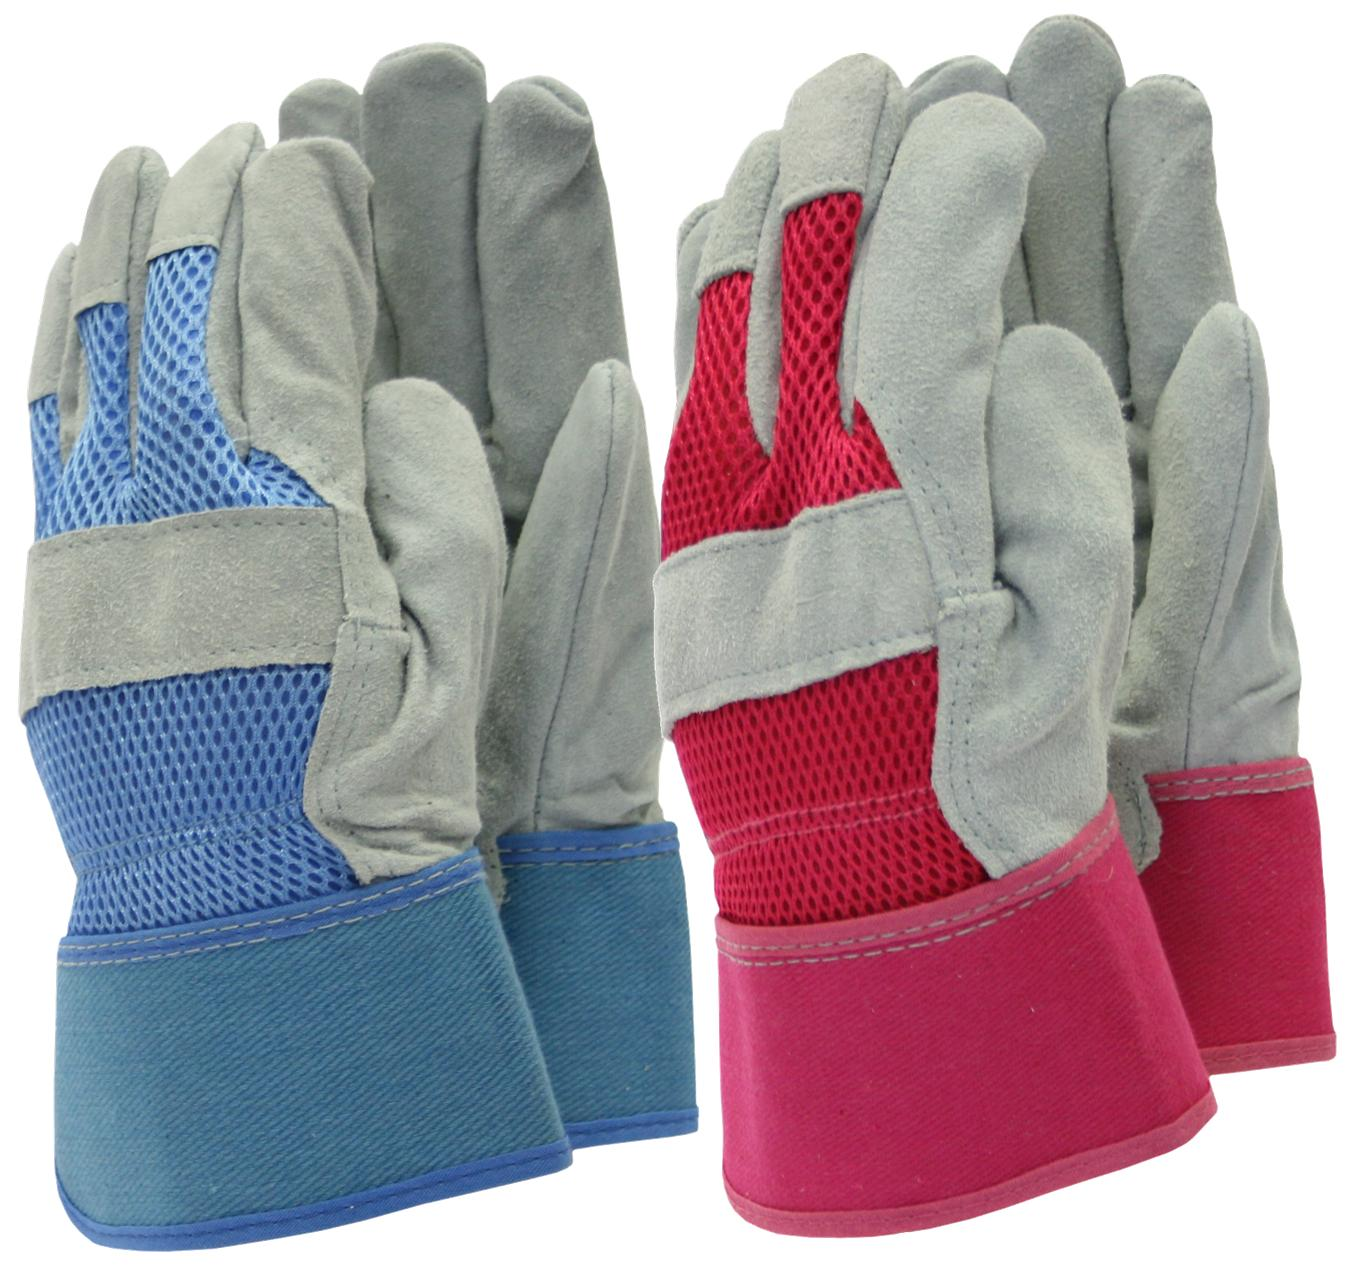 All Rounder Rigger Glove M